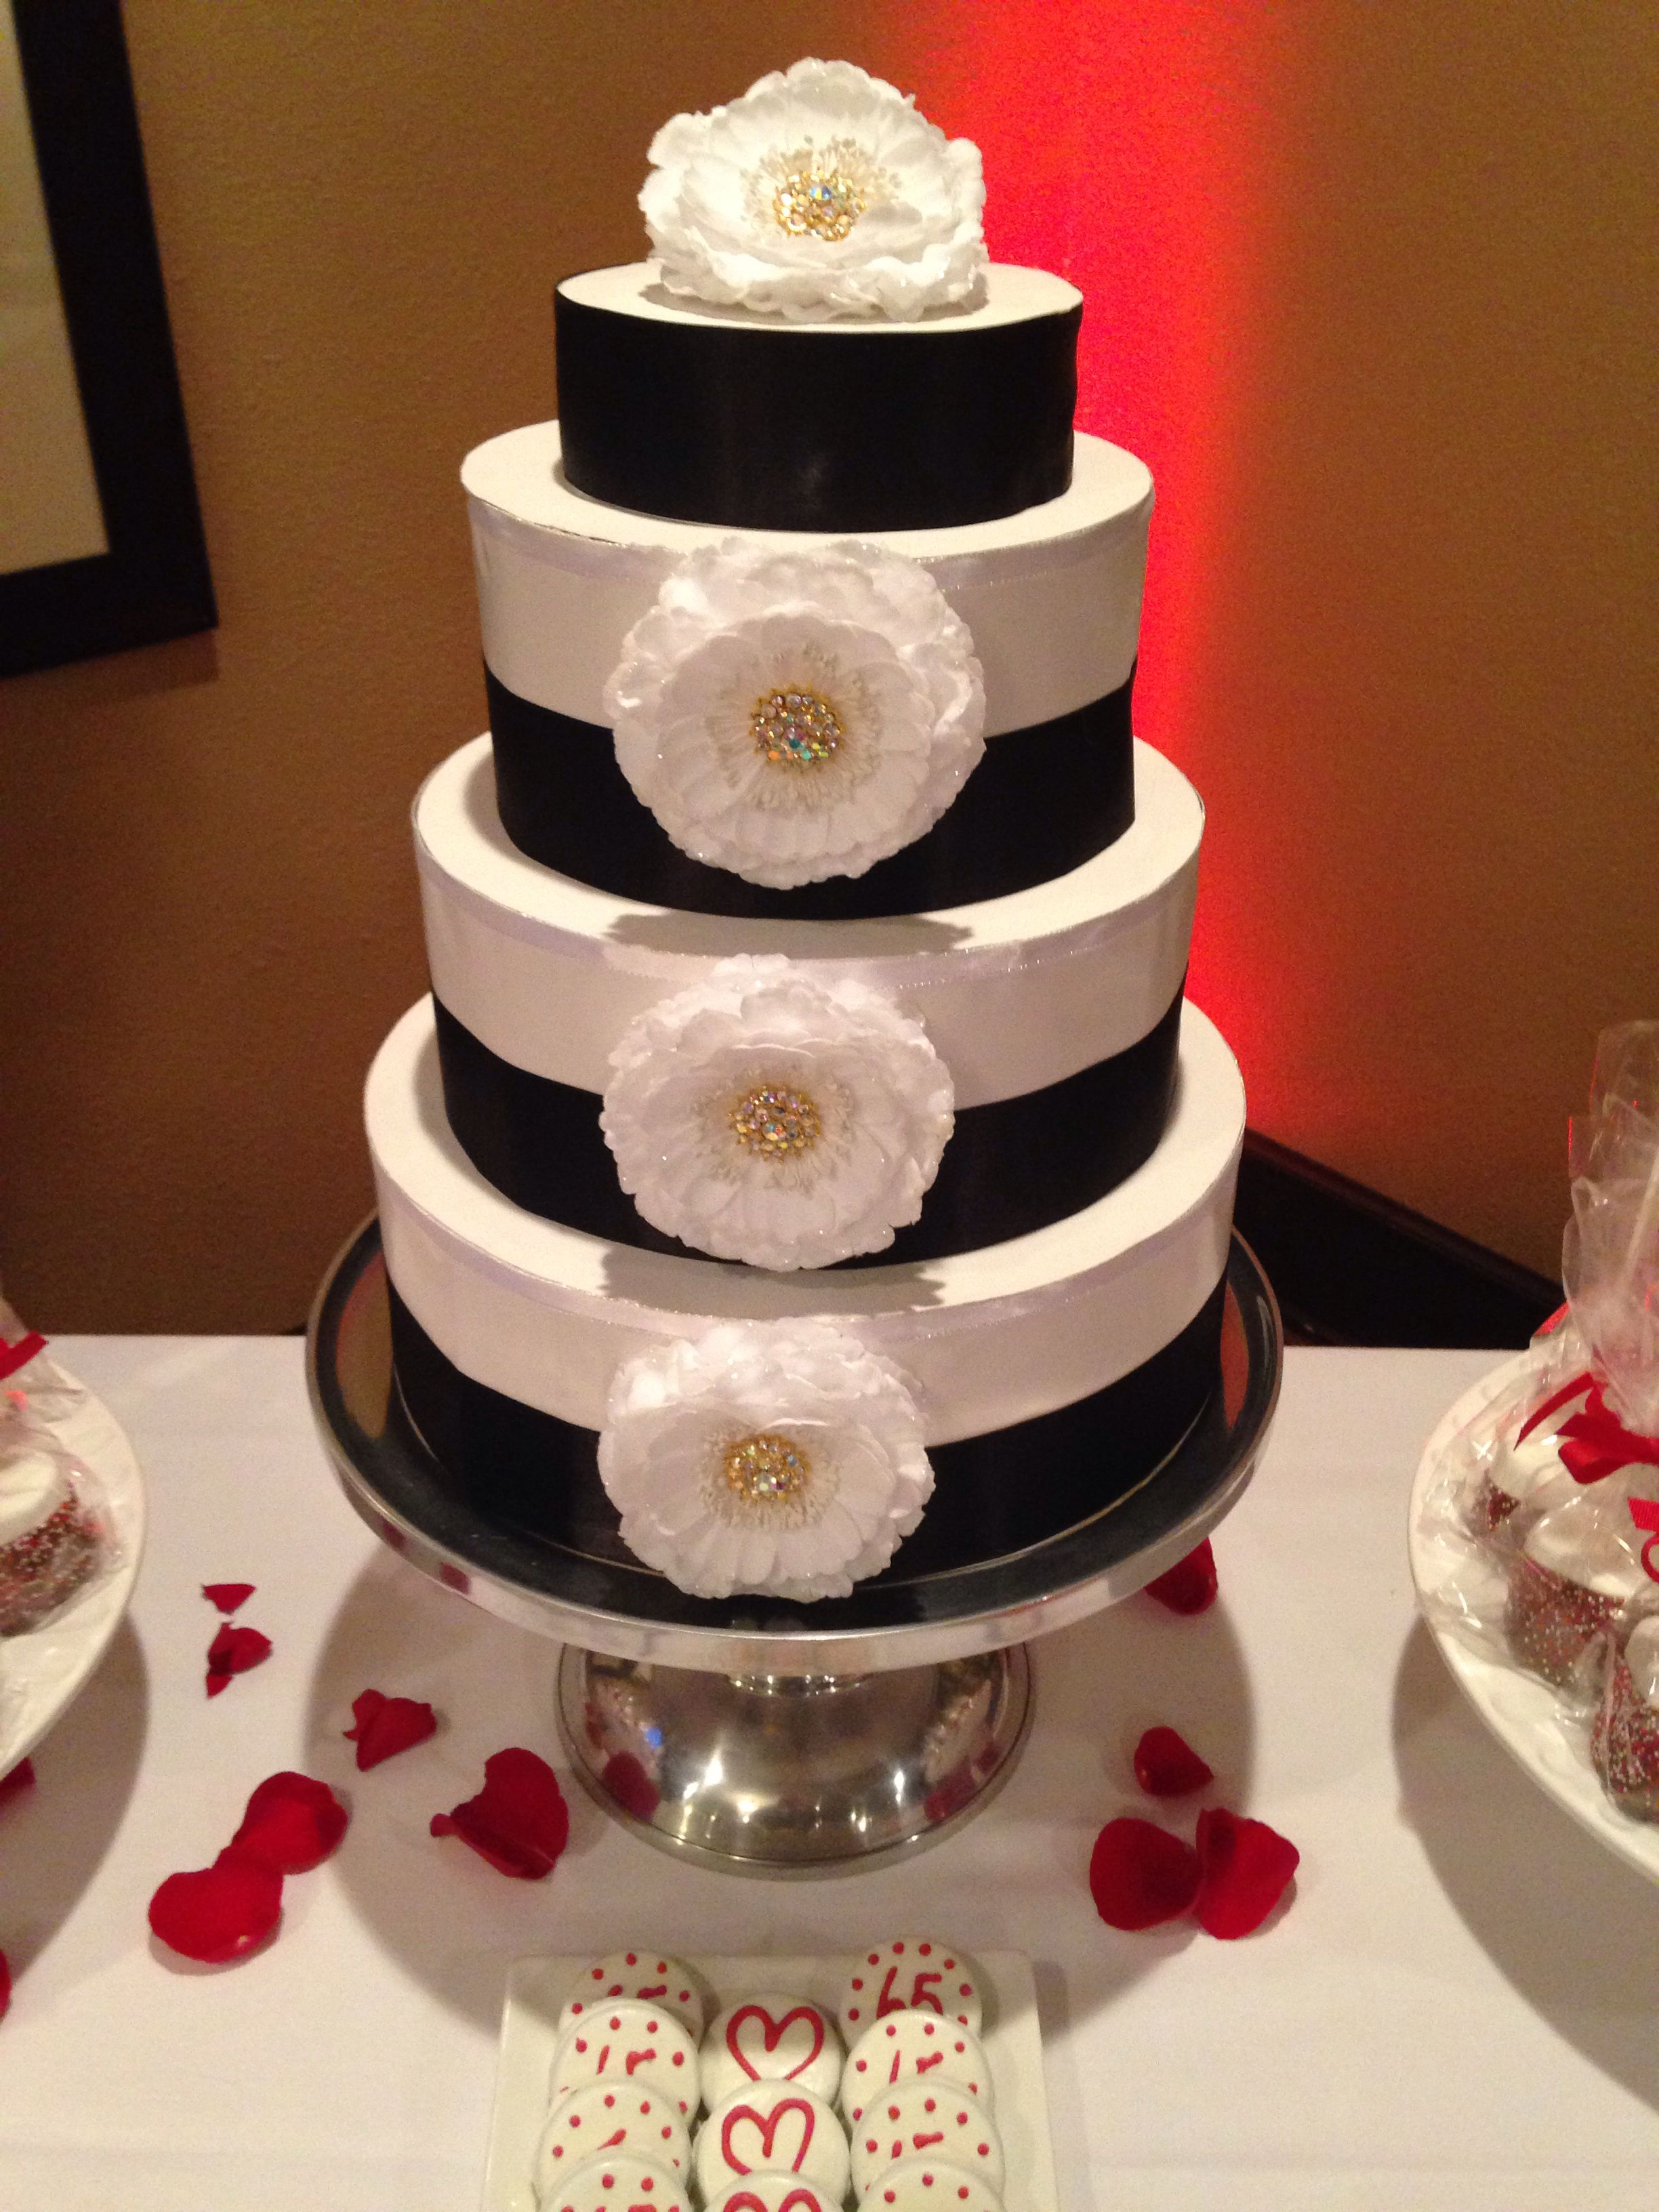 Decoration ideas for 40th wedding anniversary  Paper Cake to compliment the candy buffet  Pedro and Eveliaus th